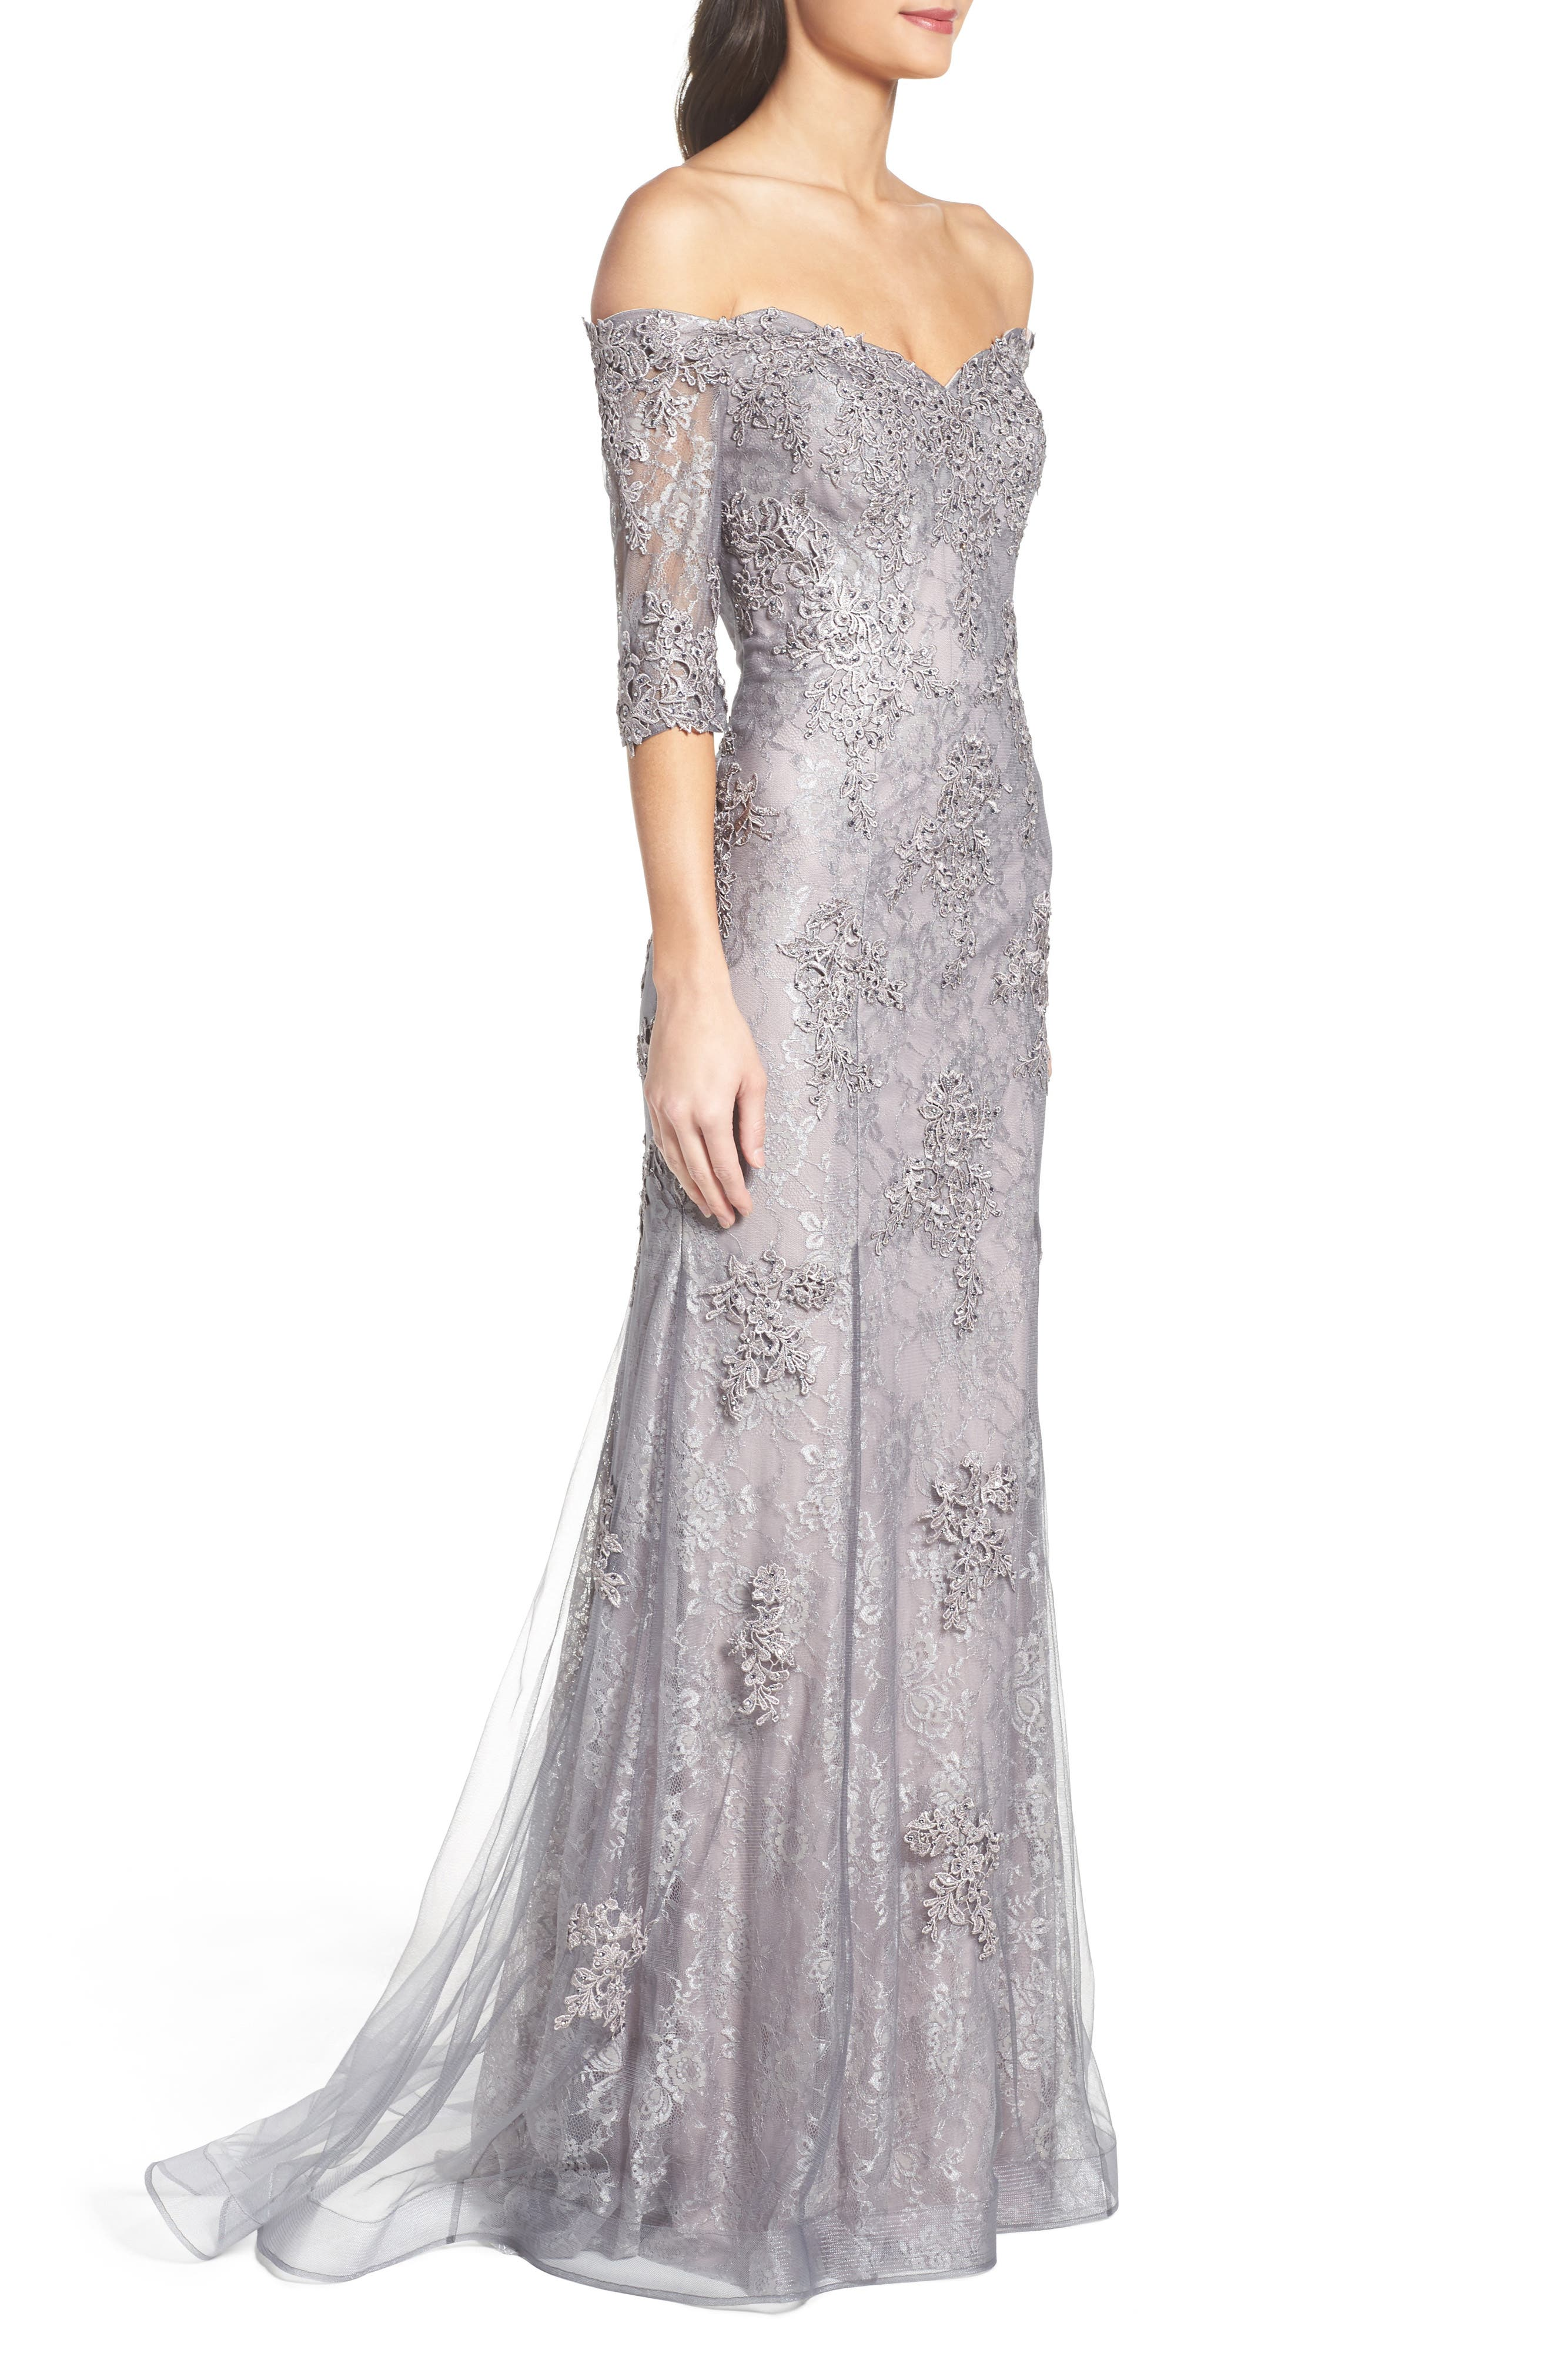 LA FEMME, Fit & Flare Gown with Train, Alternate thumbnail 3, color, PINK/ GRAY